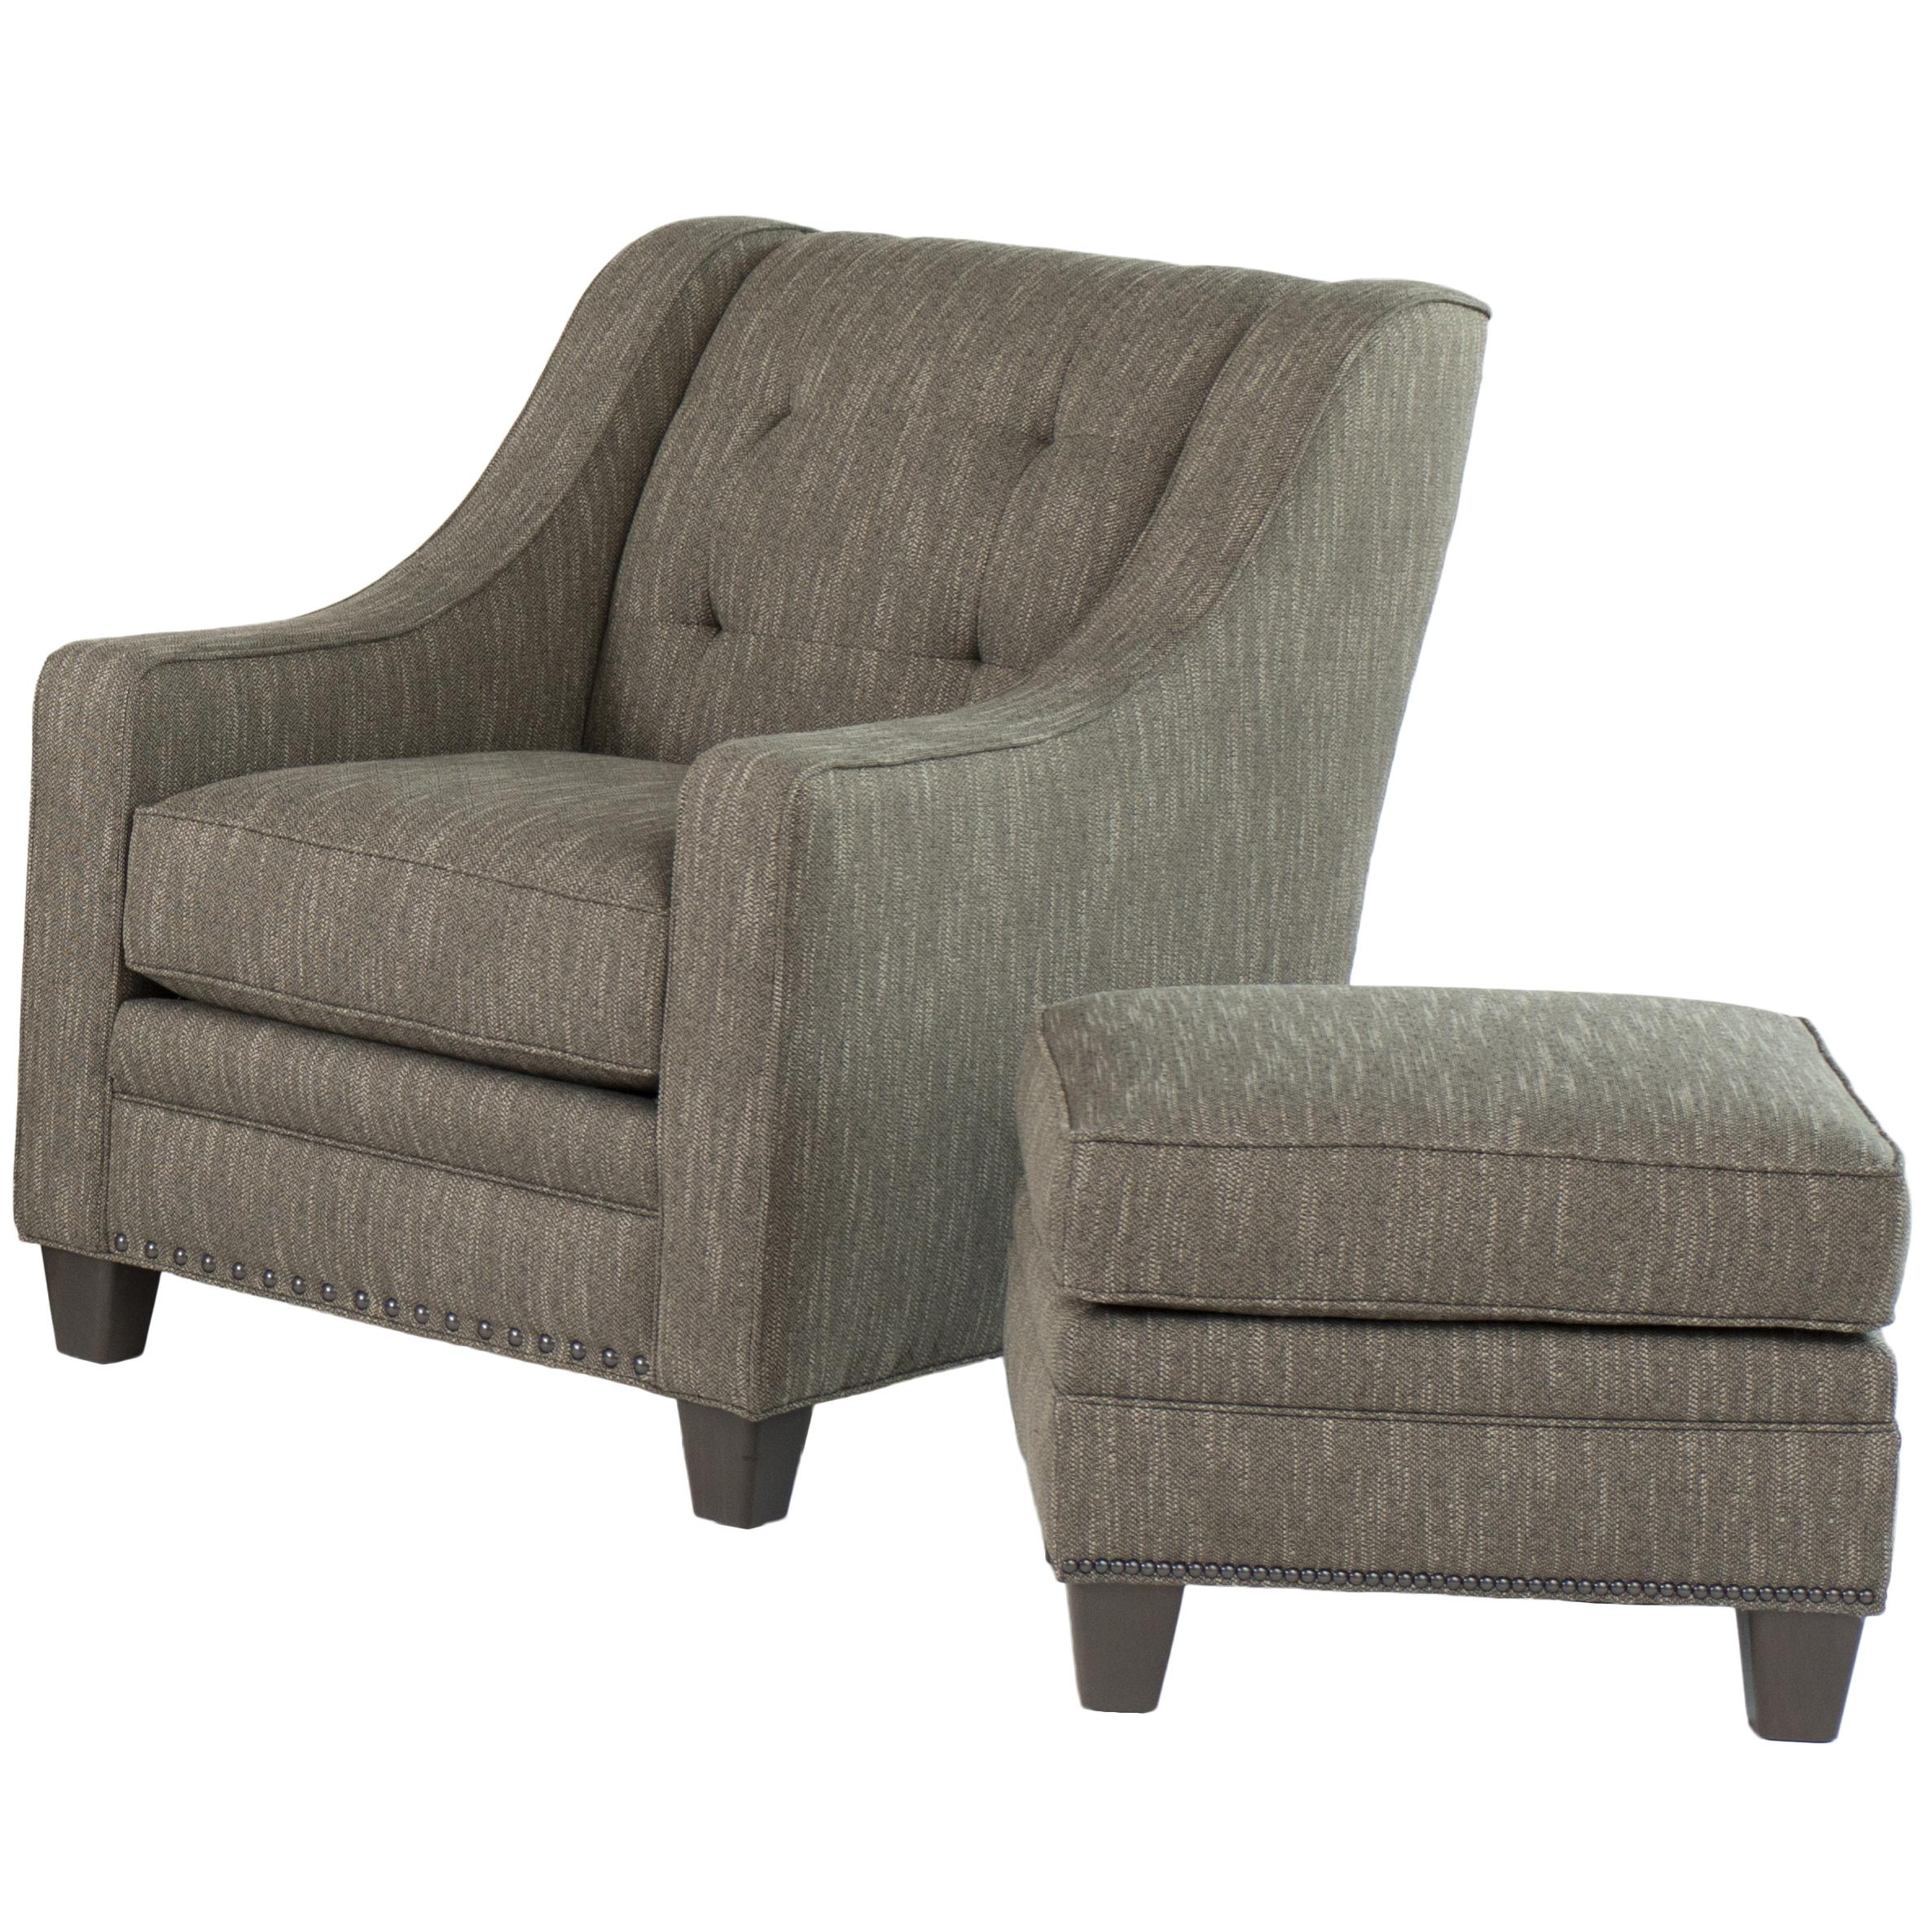 Transitional Chair with Ottoman